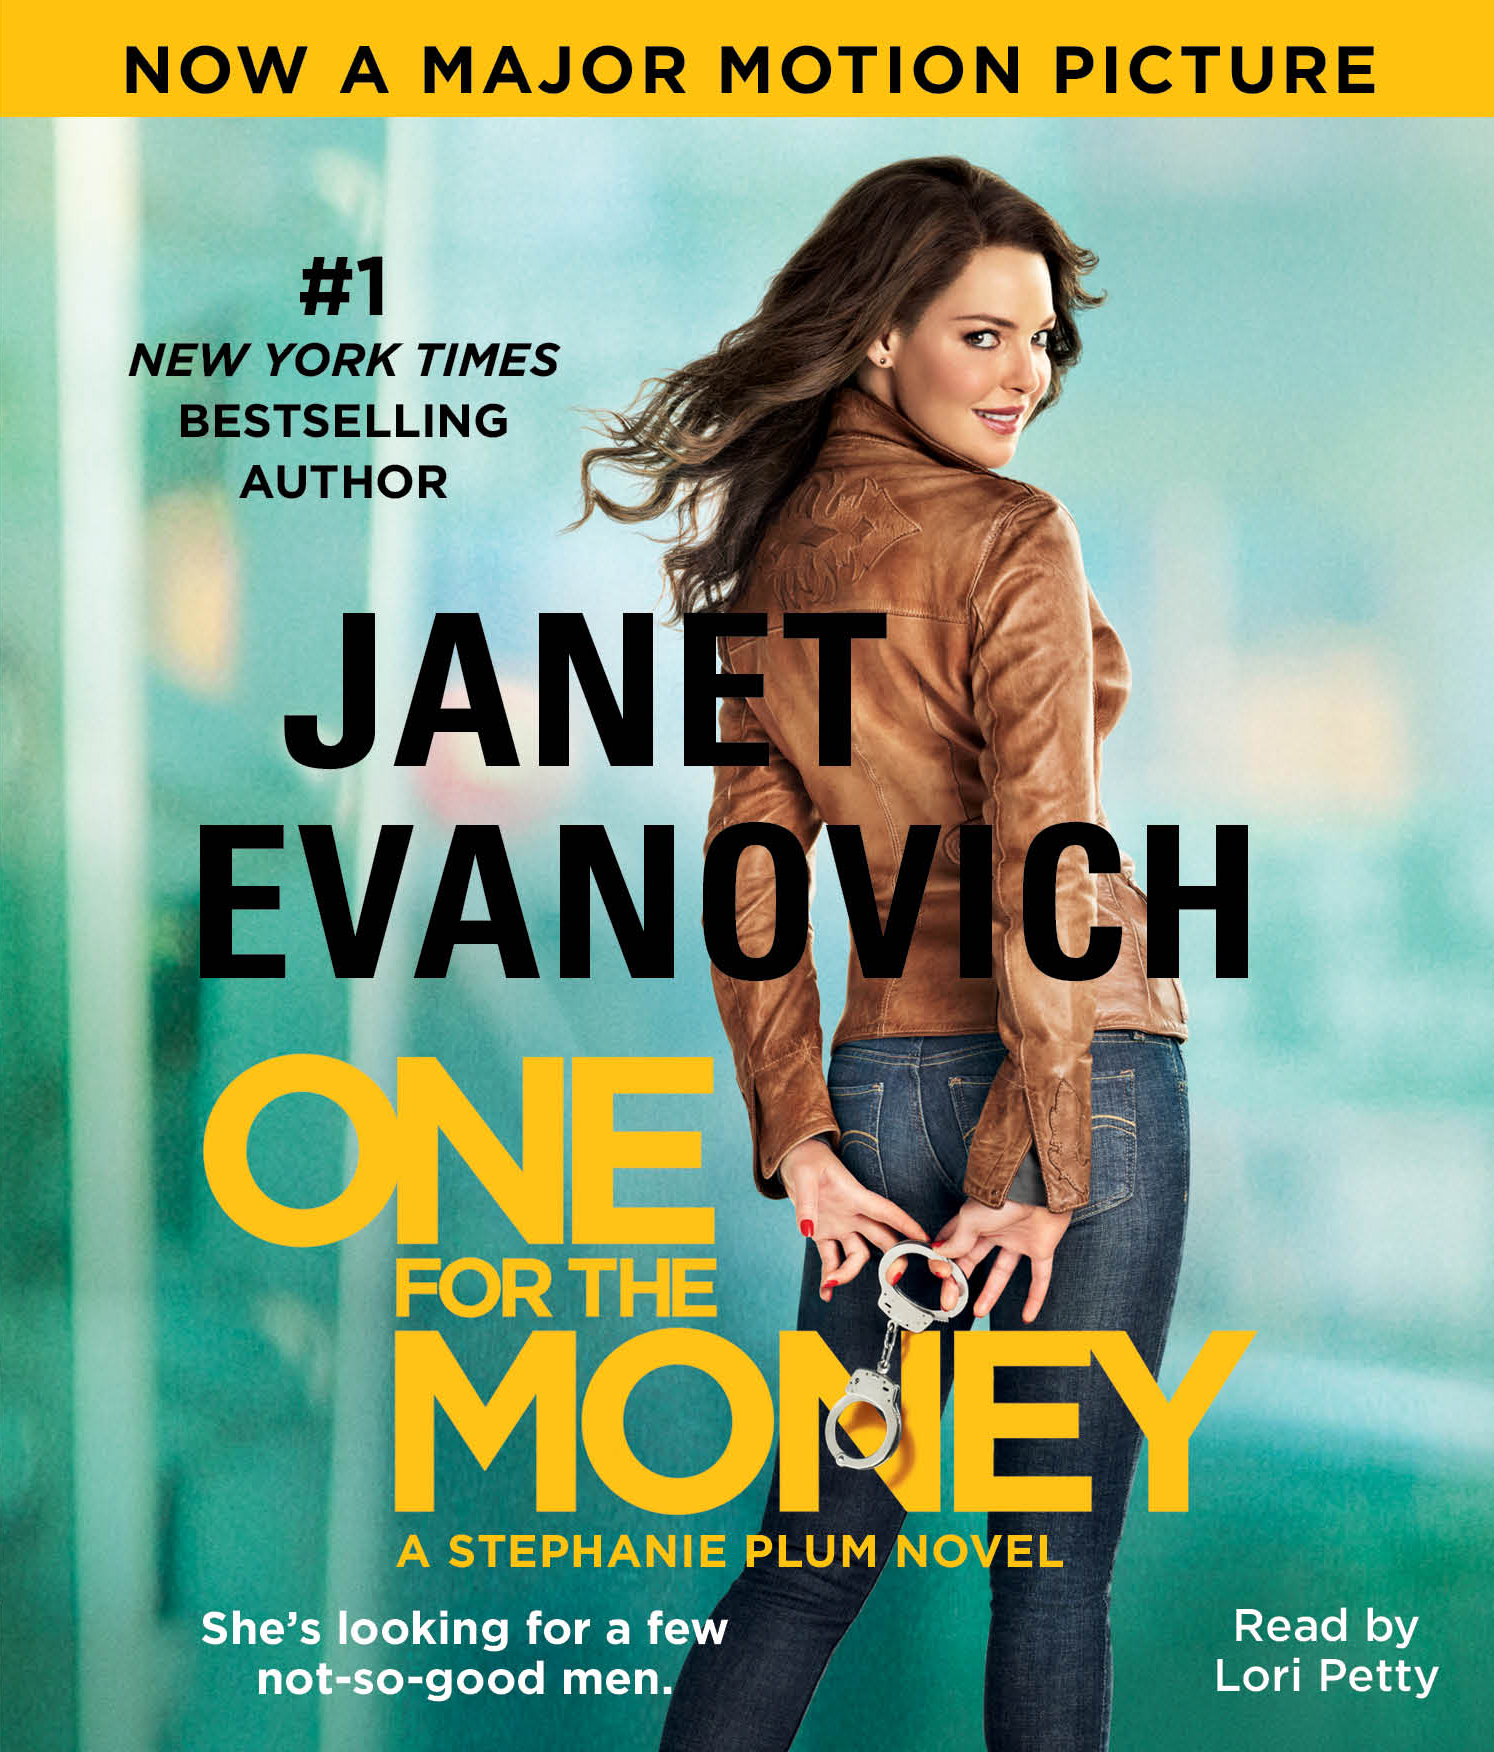 Book Cover Image (jpg): One For The Money